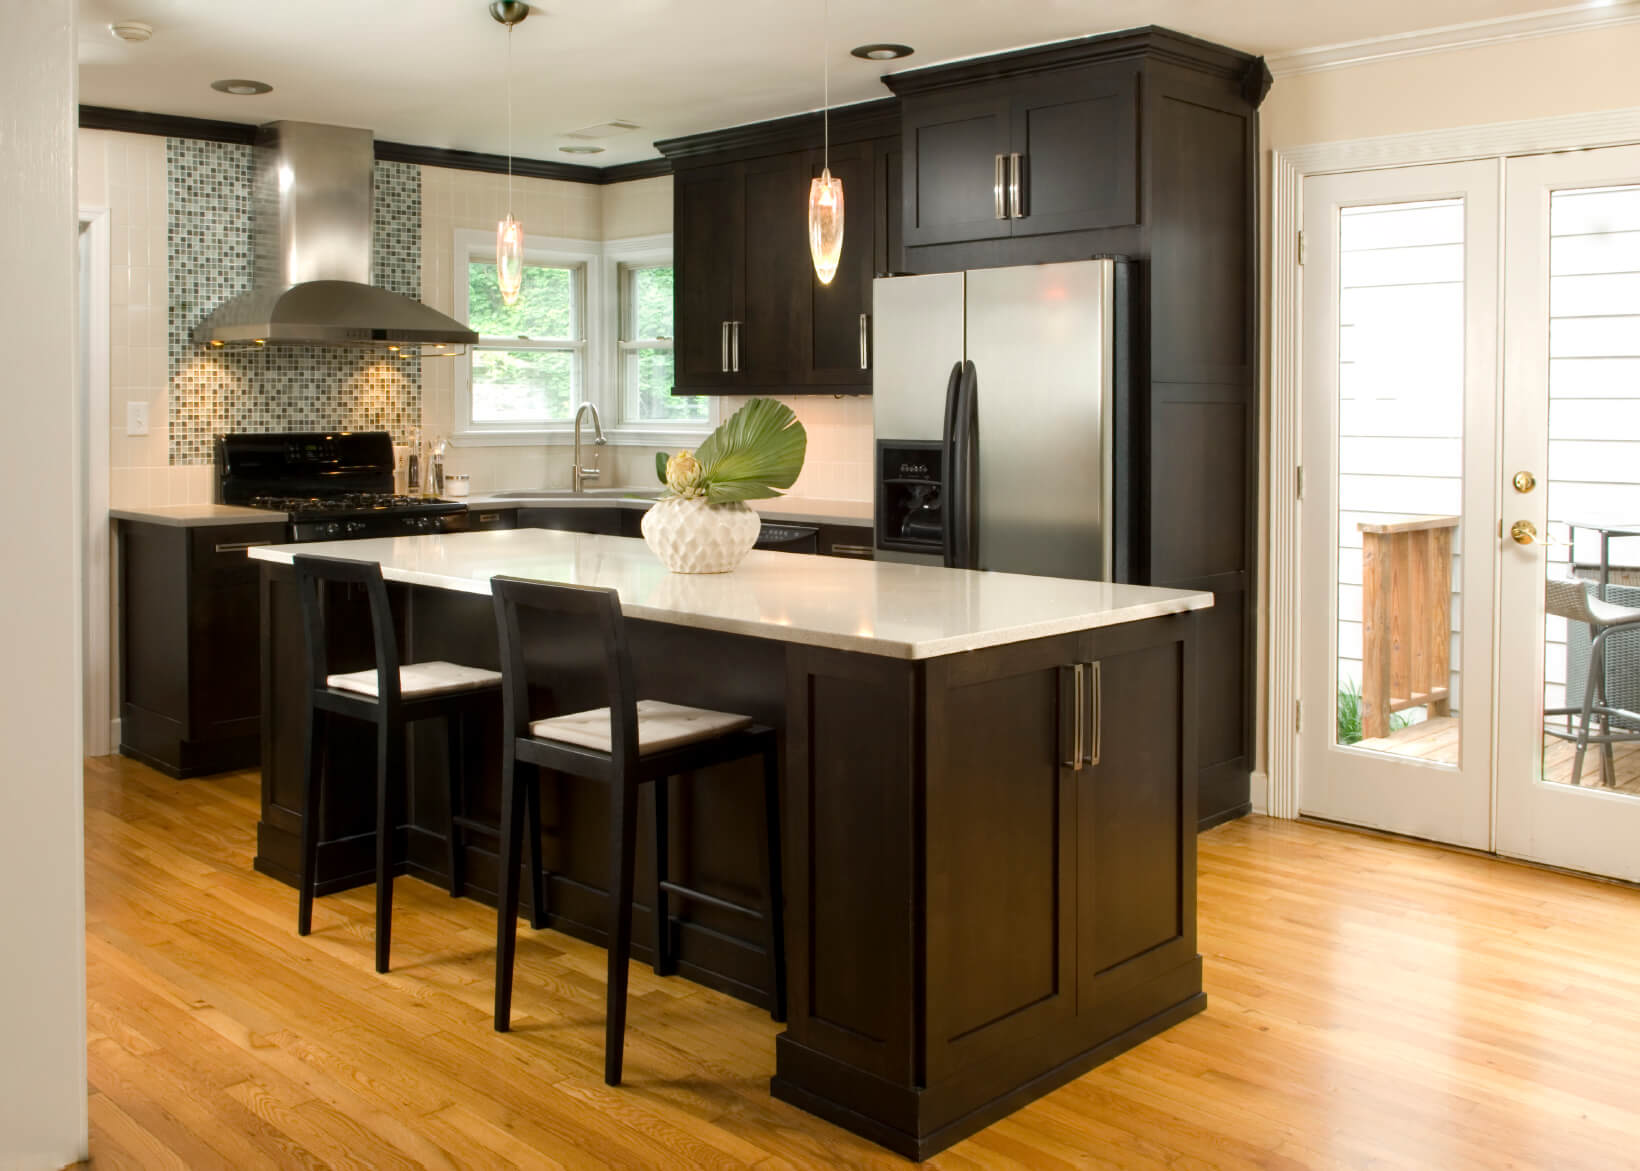 dark kitchen cabinets black kitchen cabinets High contrast white wall kitchen with dark wood paneling and cupboards paired with white countertops